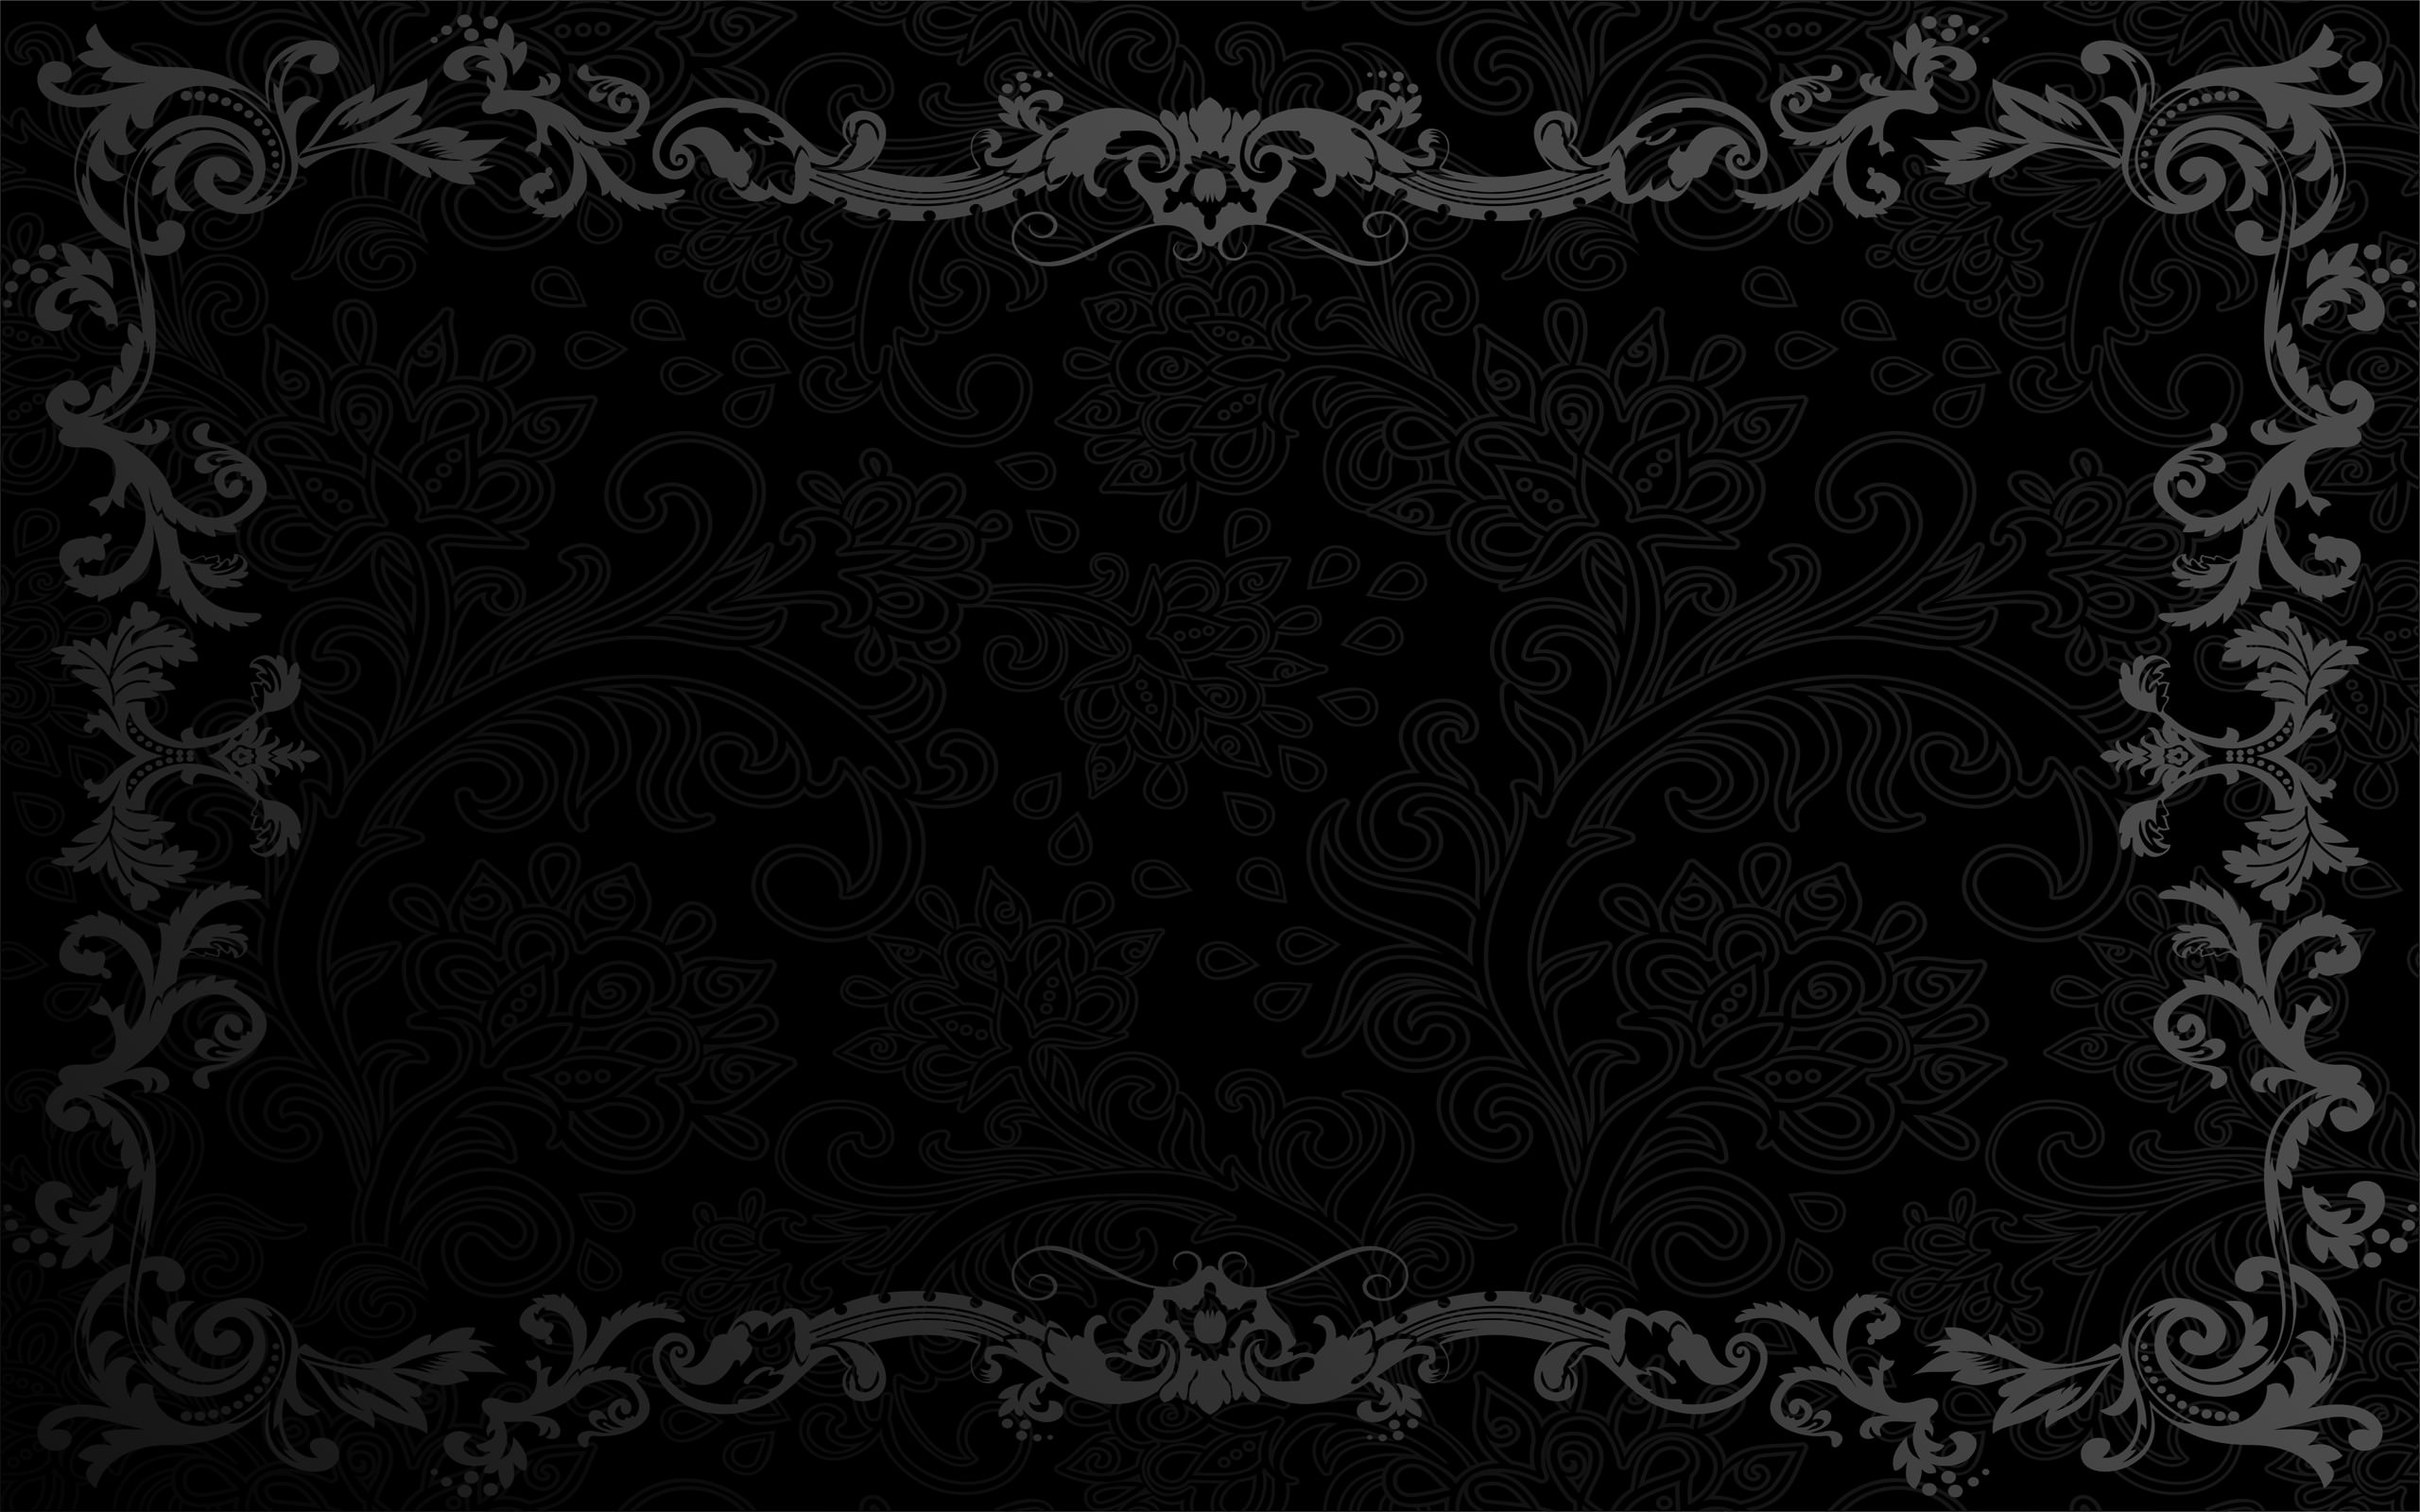 Black Vintage Floral Wallpaper